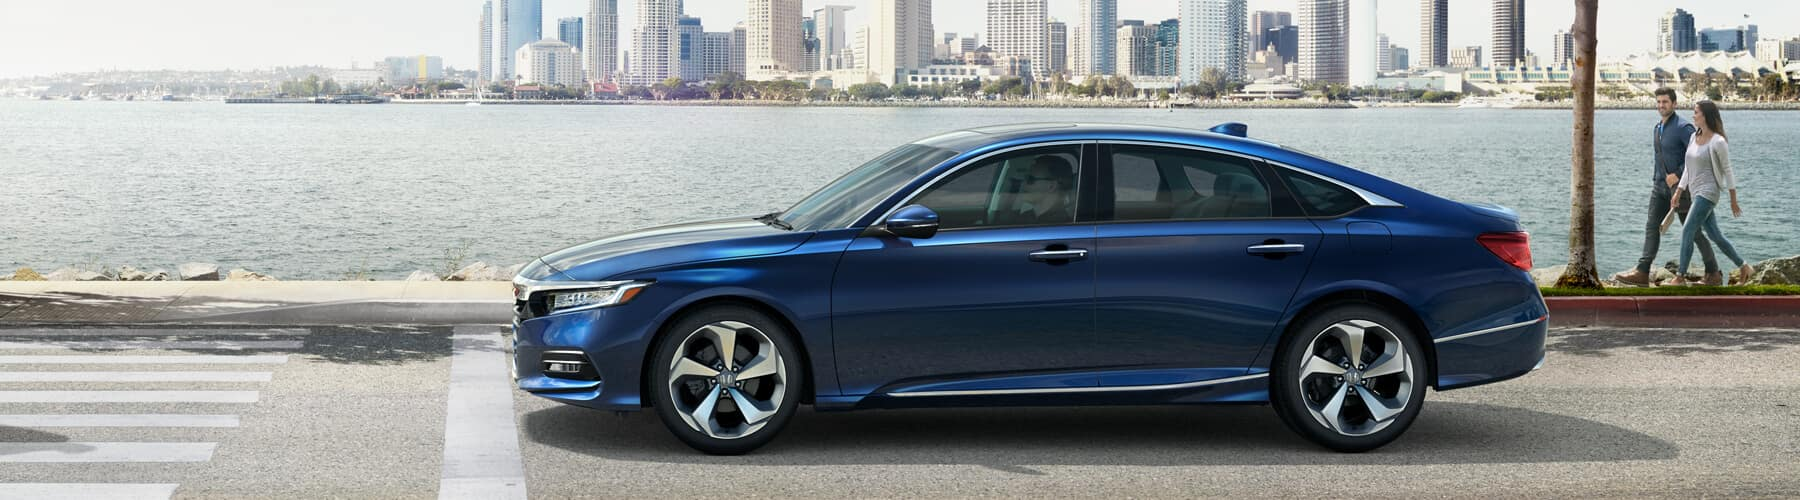 2019 Honda Accord Sedan Banner